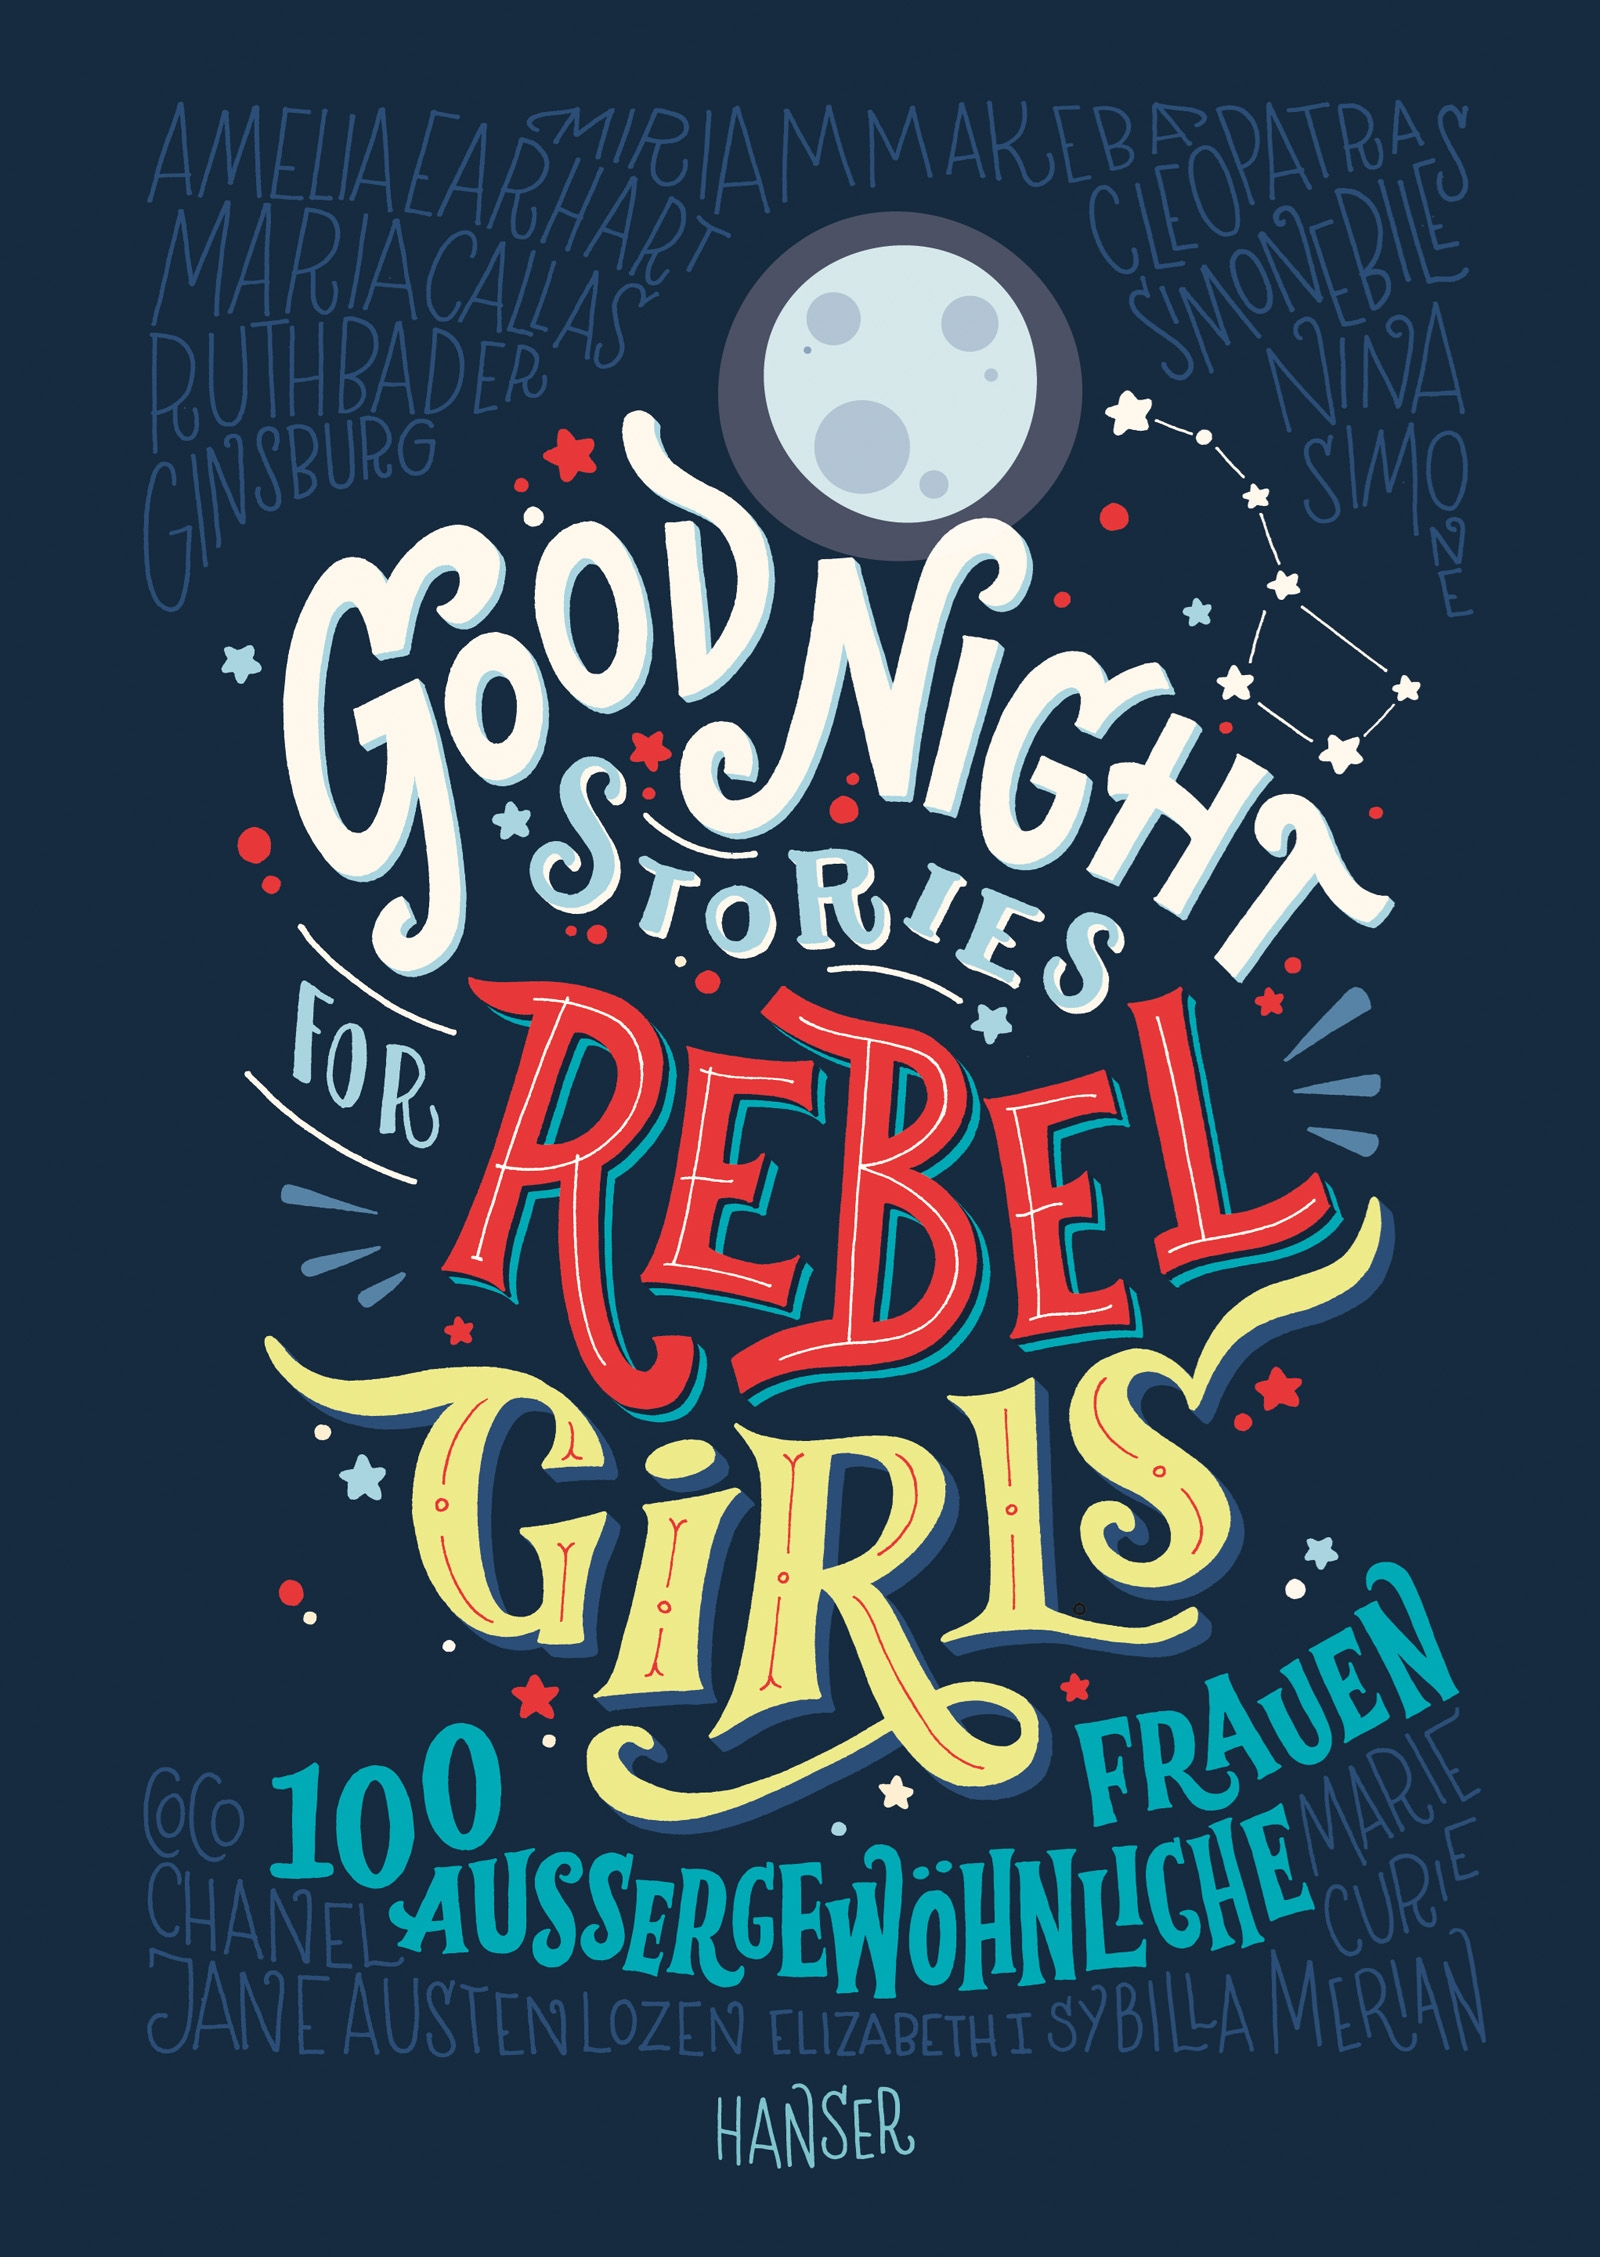 https://www.weltbild.at/artikel/buch/good-night-stories-for-rebel-girls_22860494-1?wea=59529658